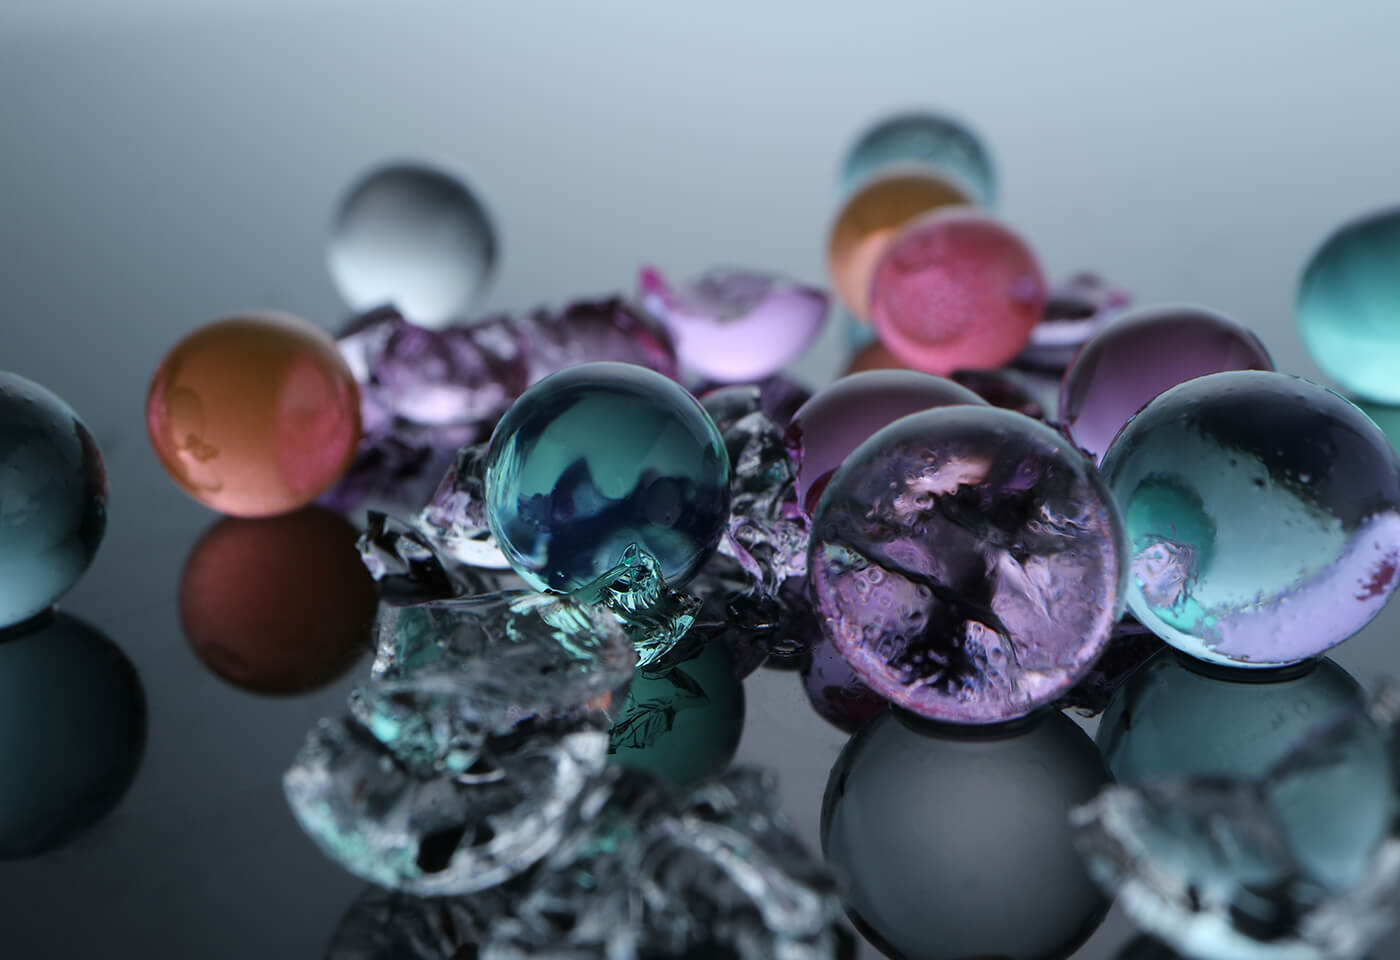 Marbles on reflective surface